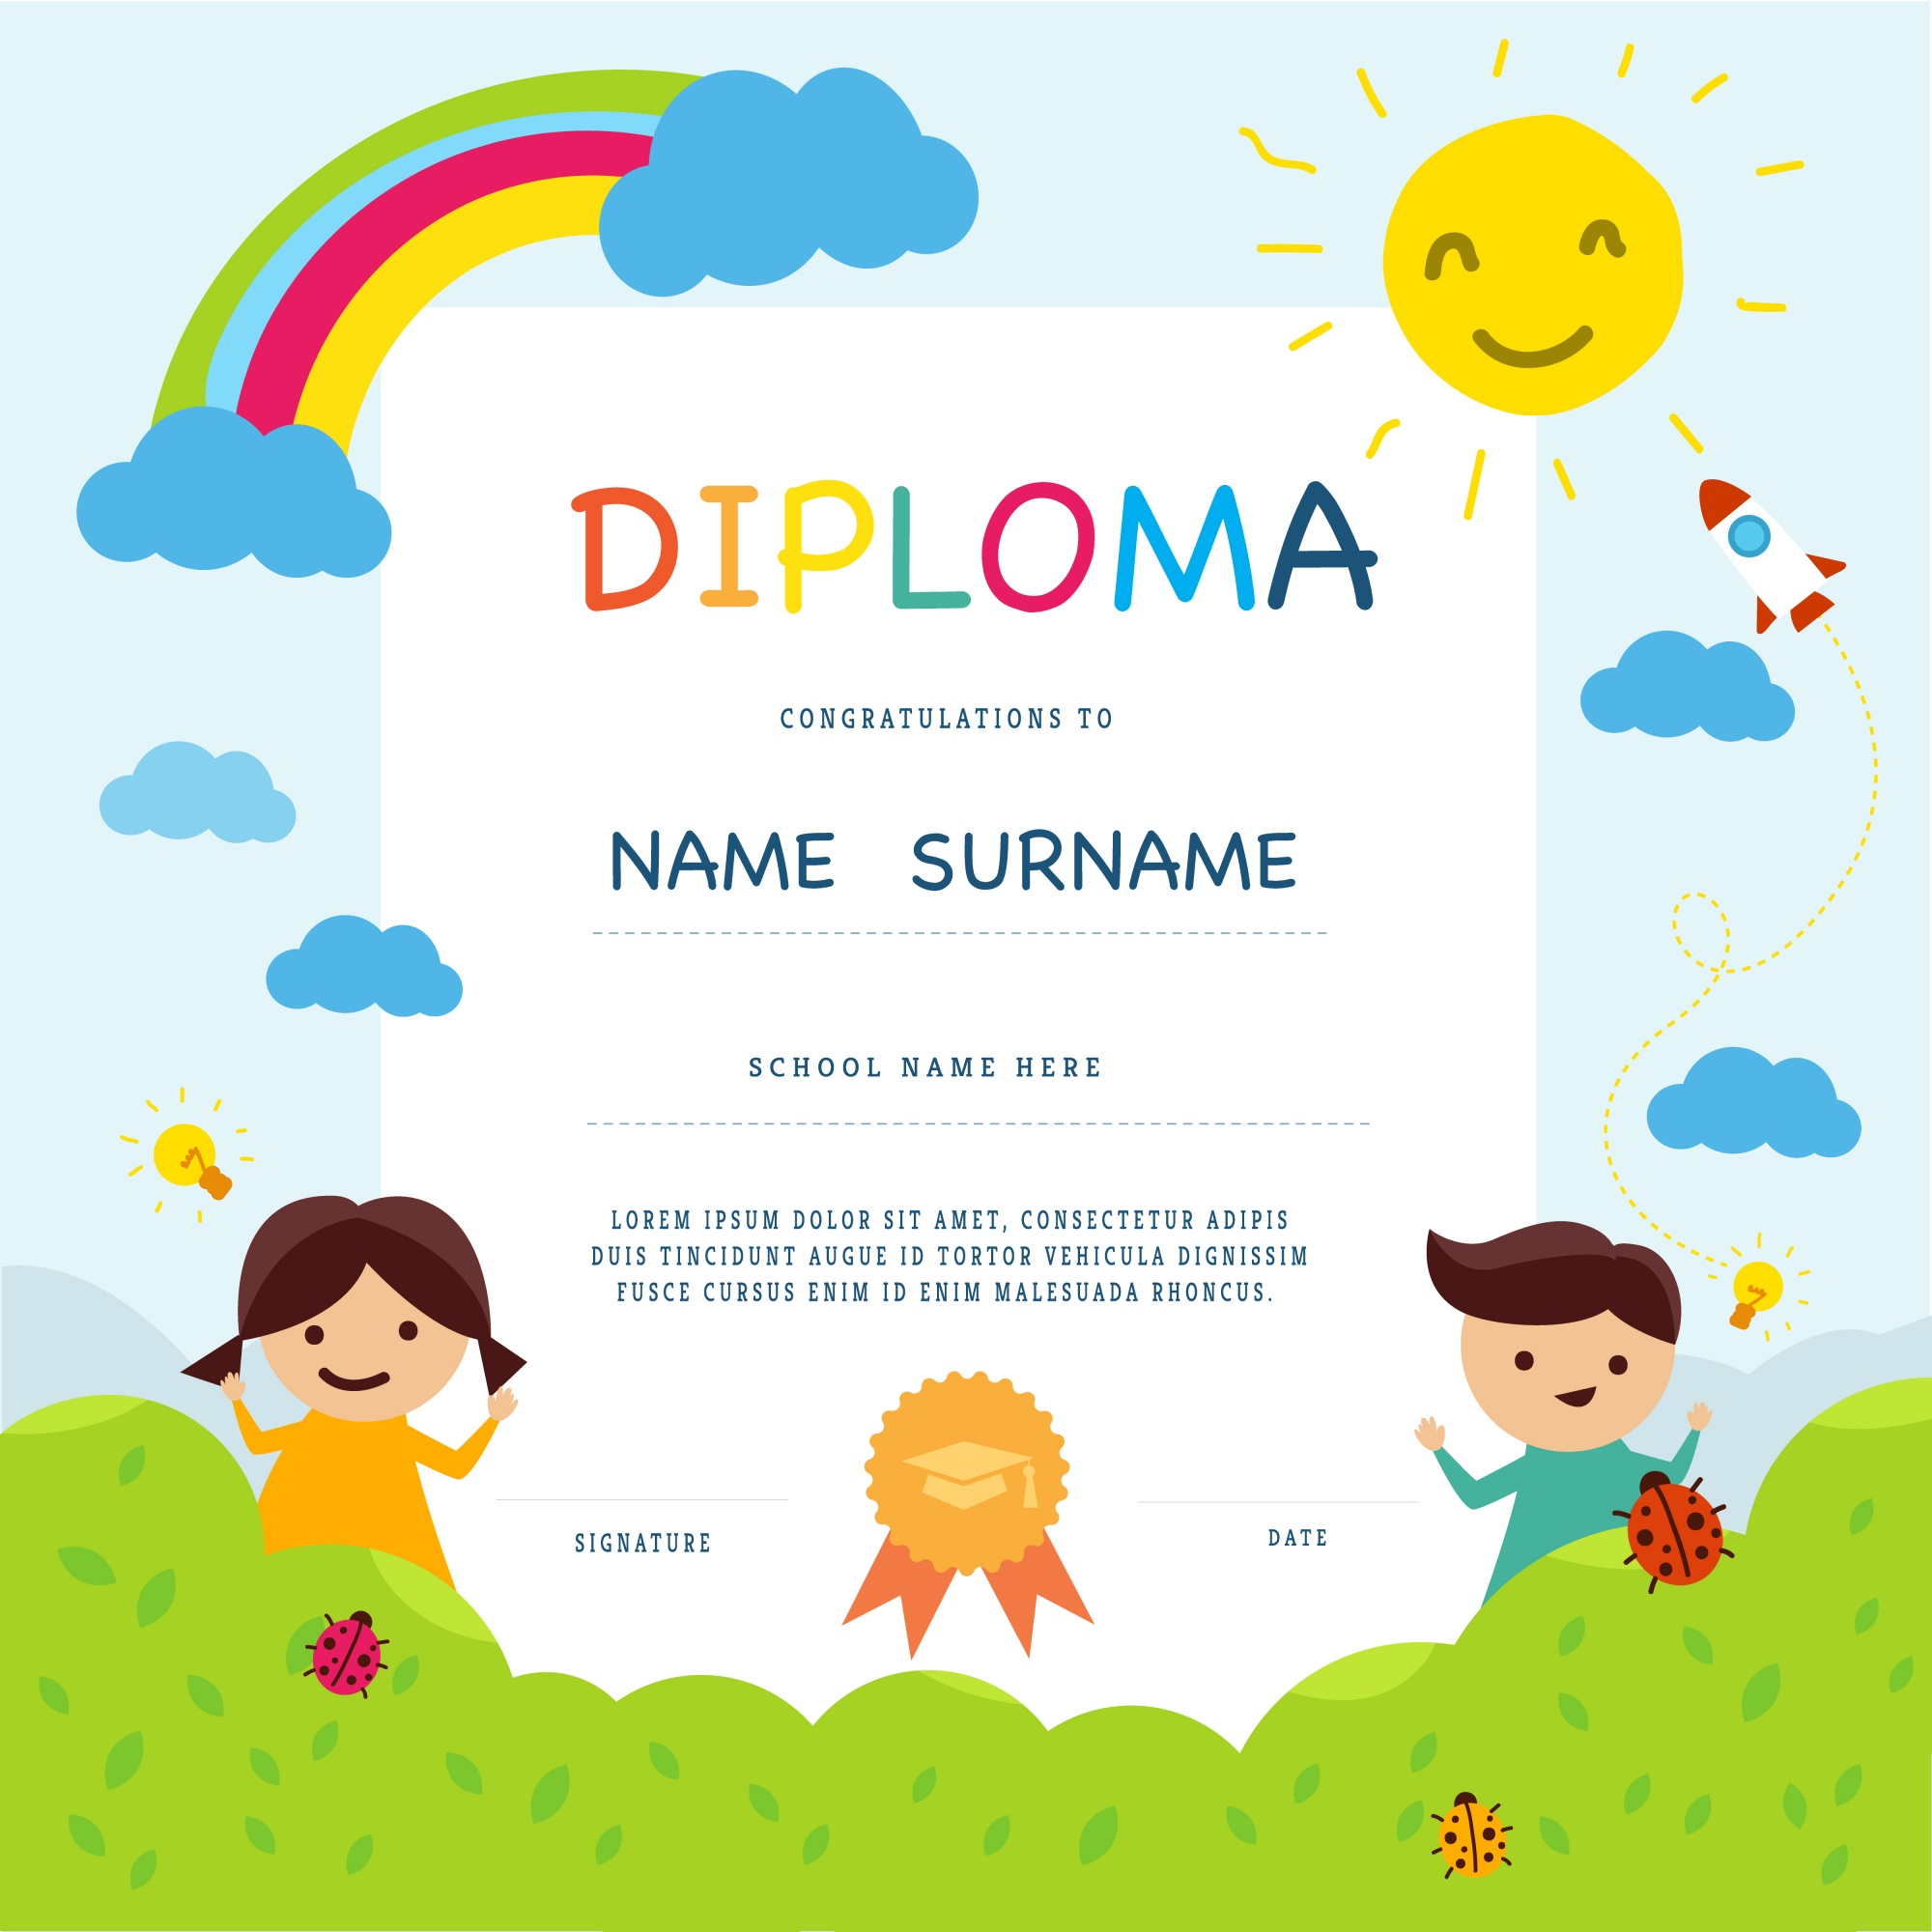 School diploma template